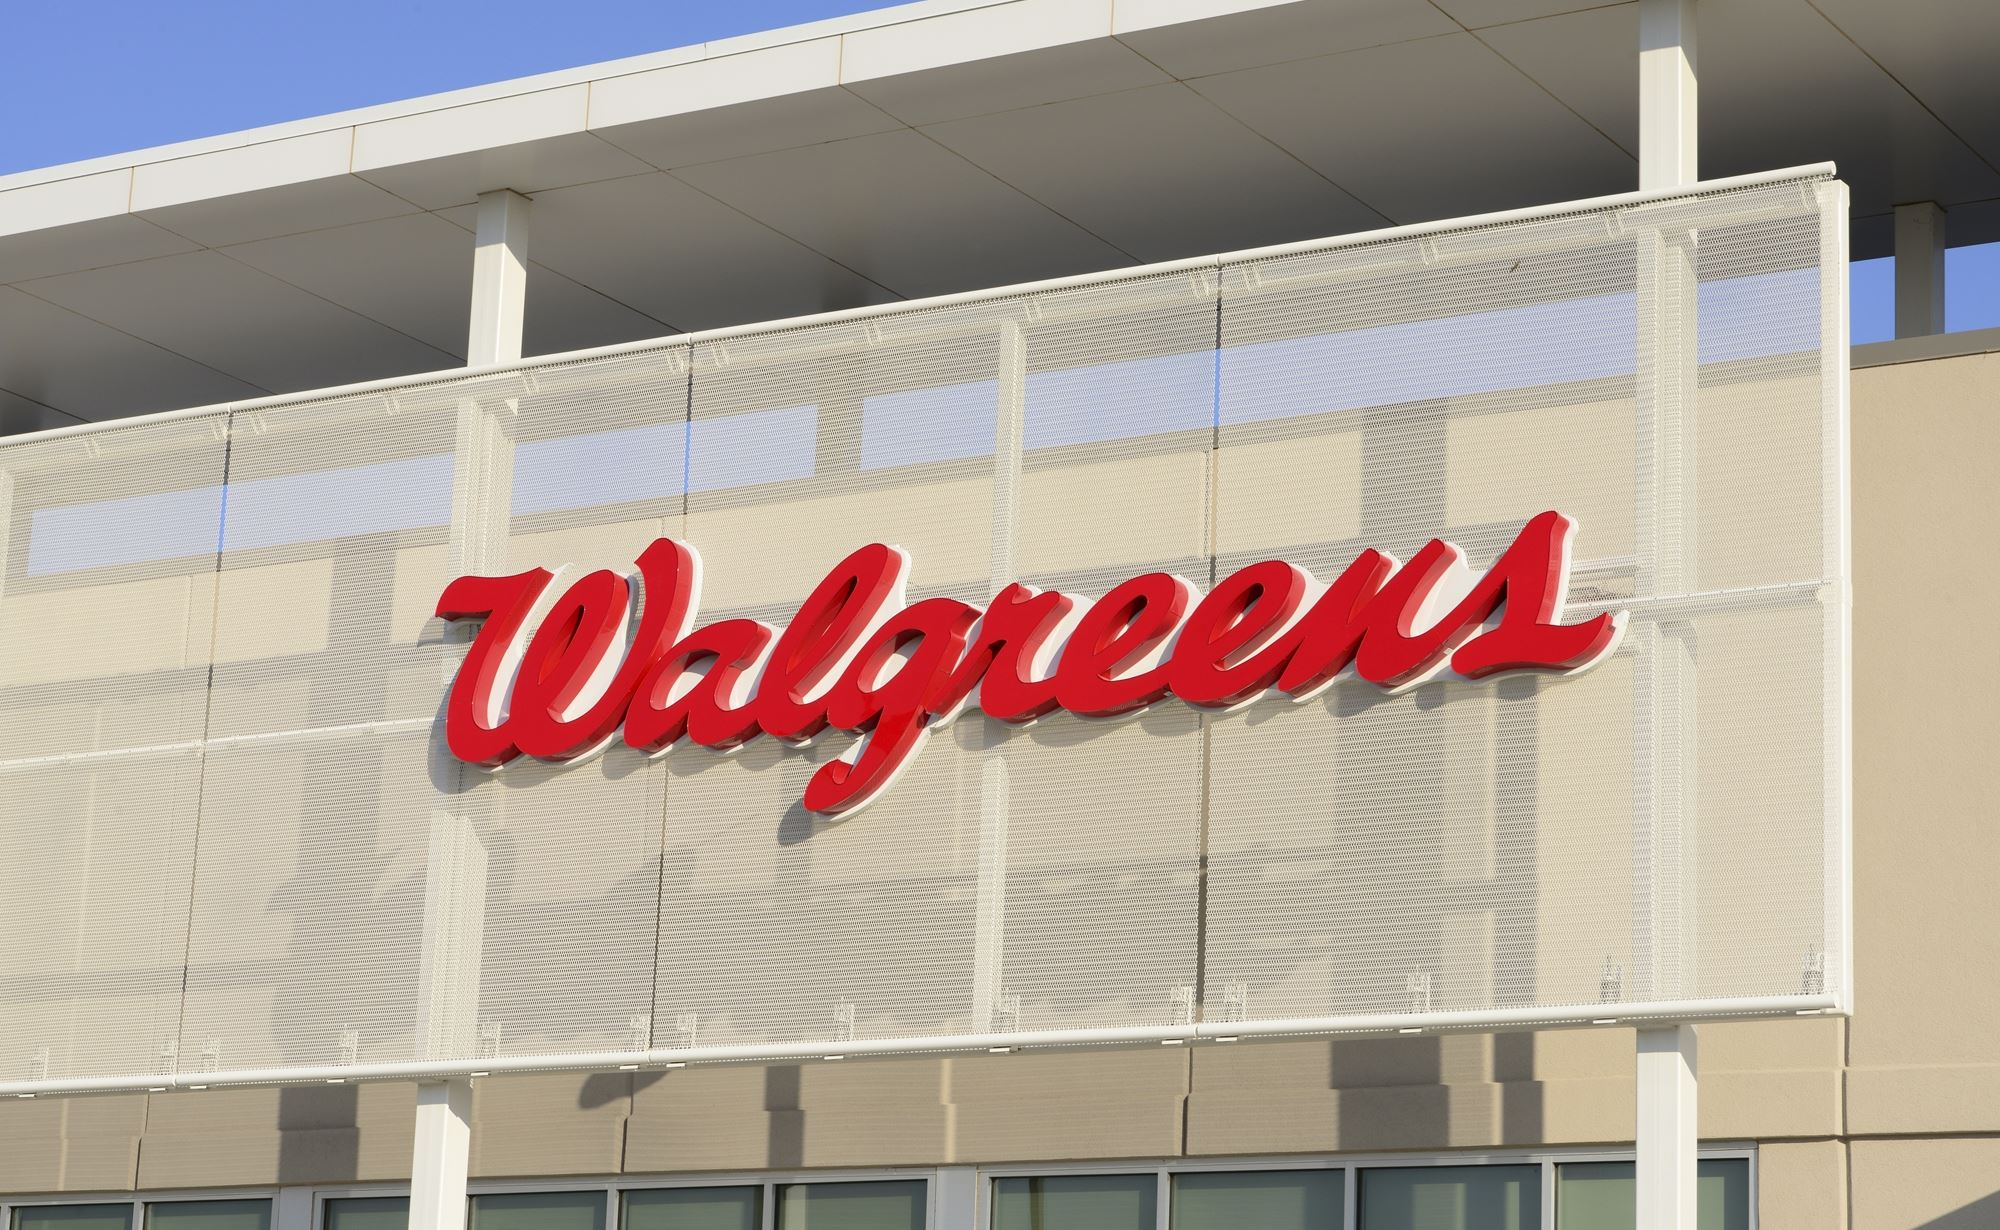 Walgreens and Cambridge Architectural Mesh